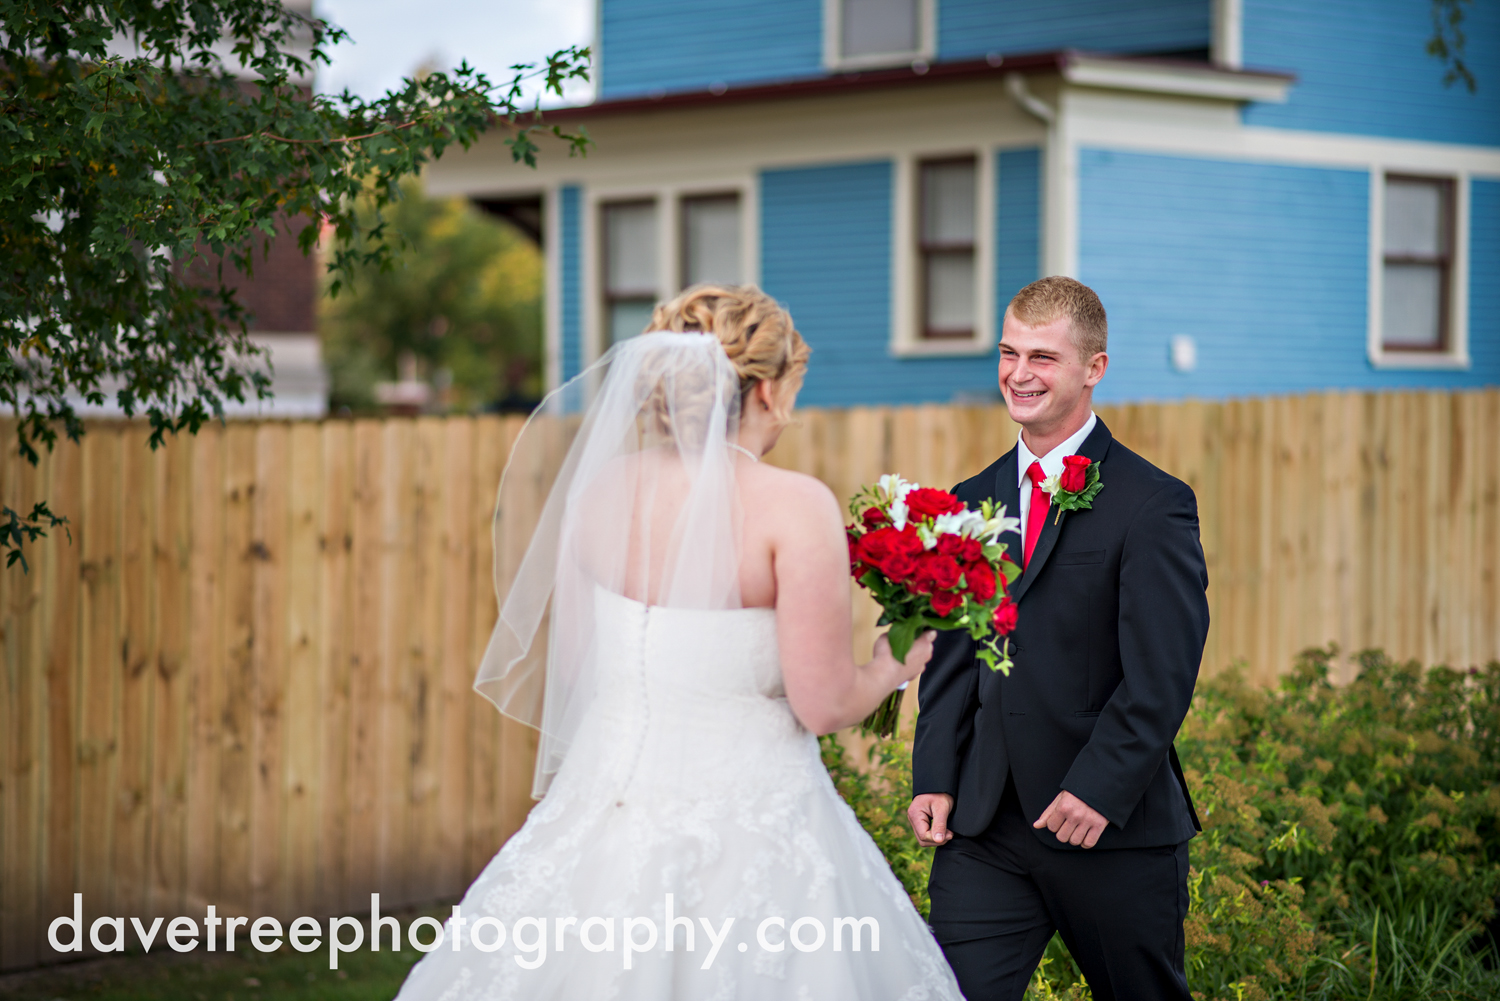 holland_wedding_photographer_71.jpg